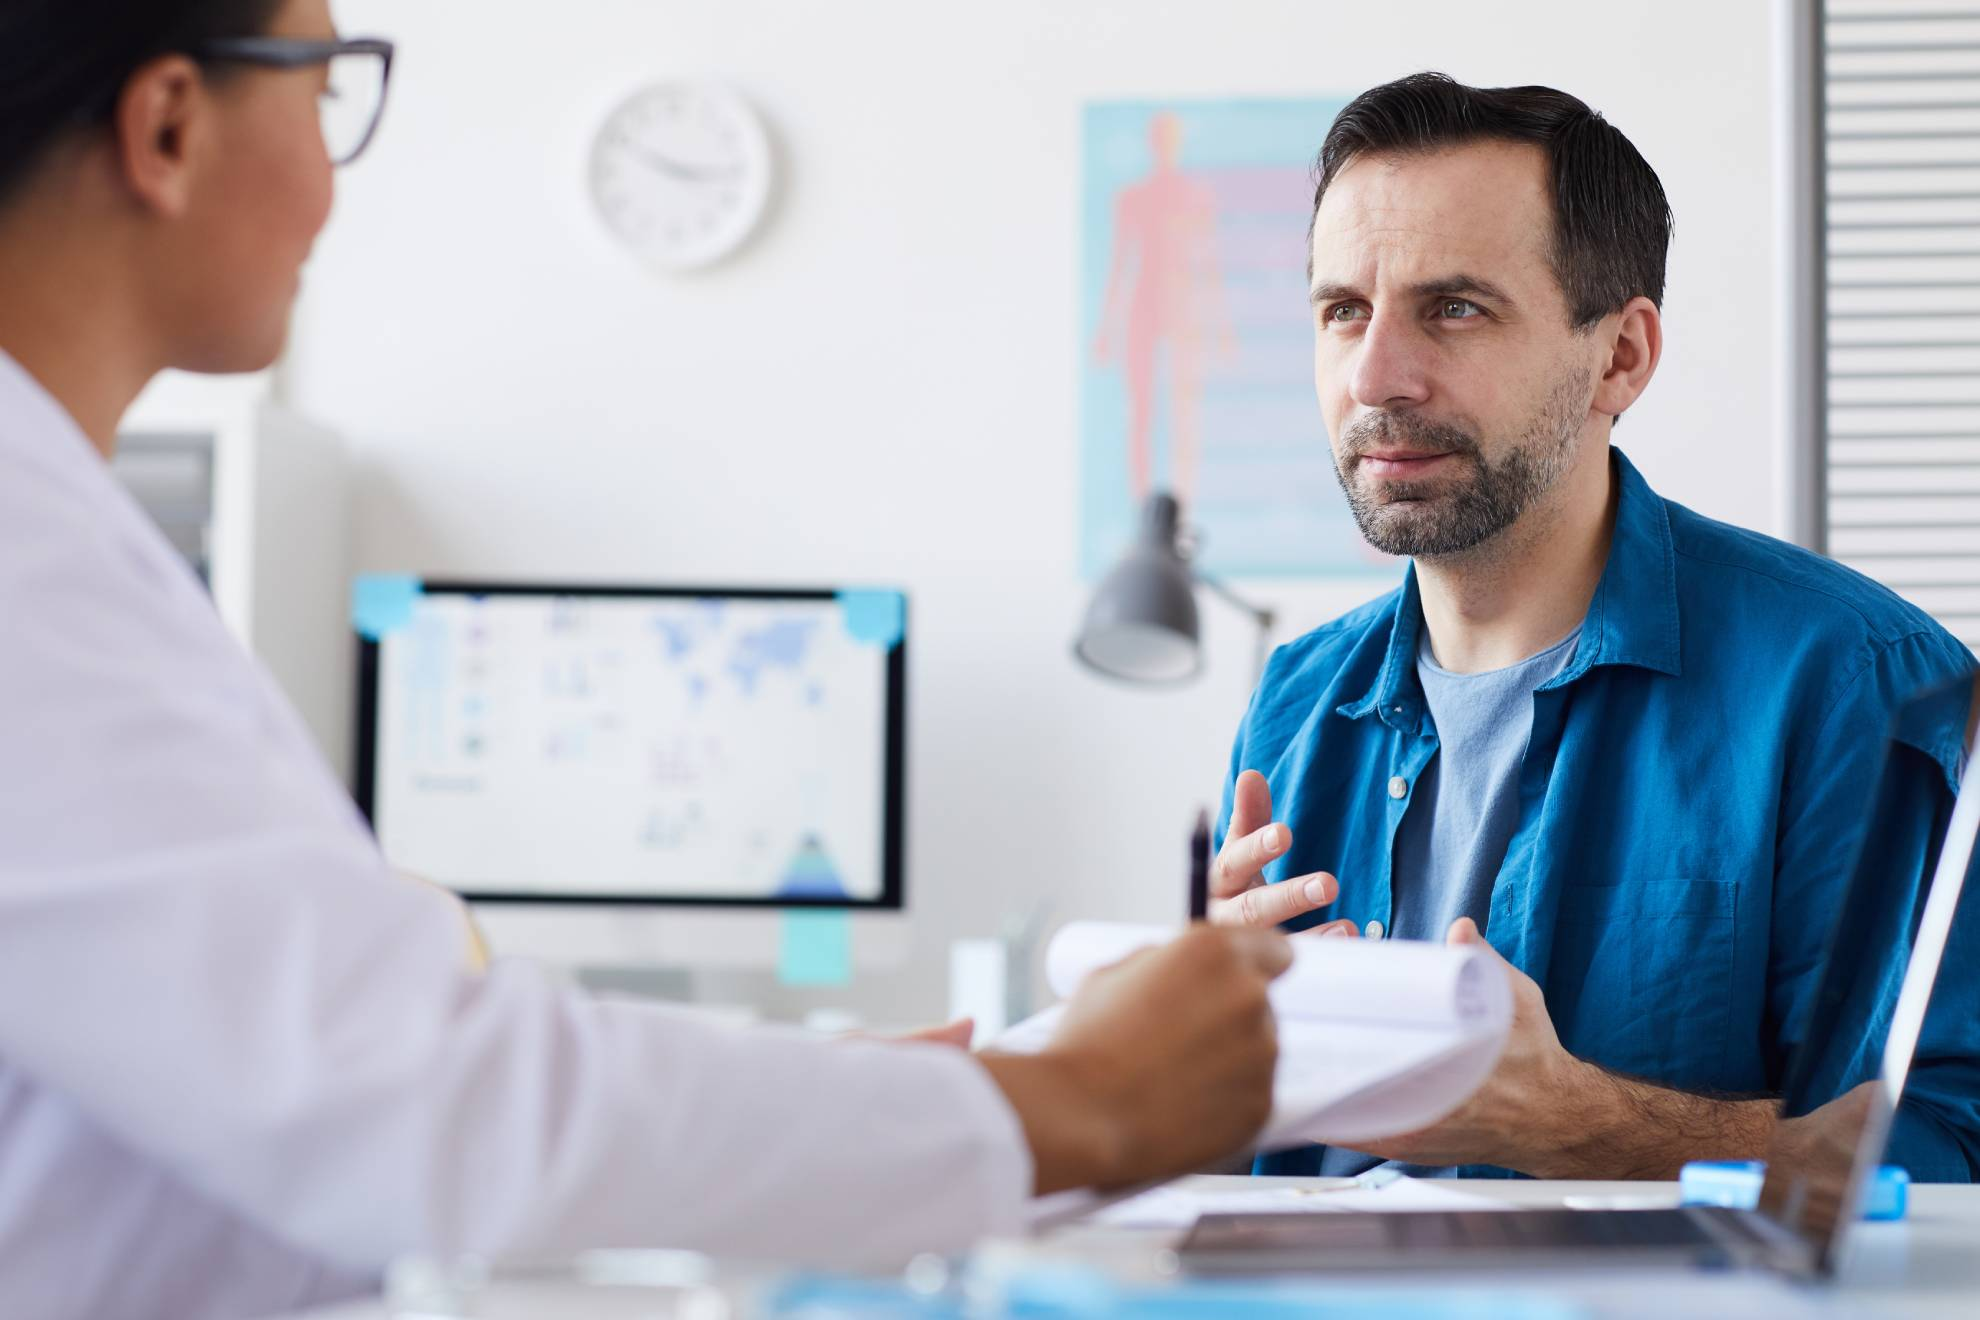 patient-at-doctor-39-s-office-W2KC5L7 (1)